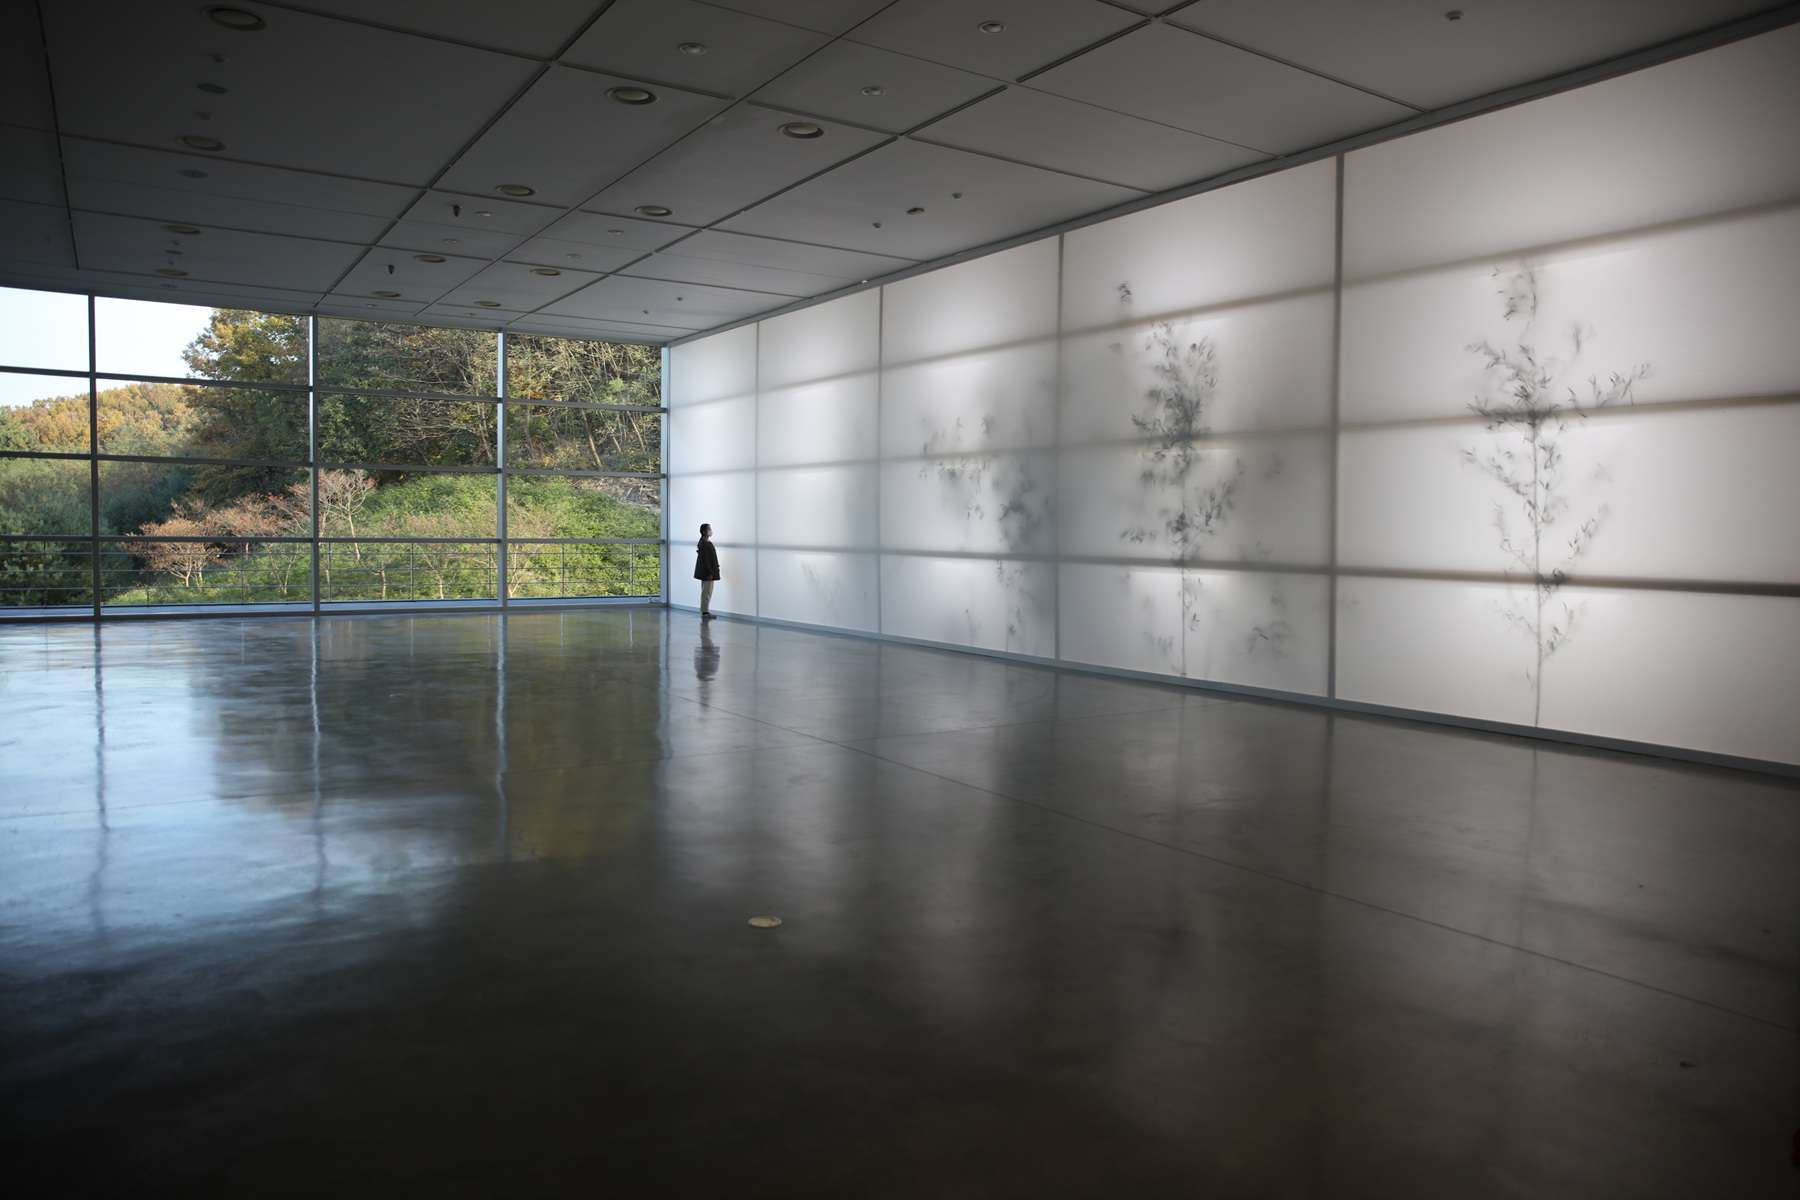 Person in silhouette standing in front of a large art installation